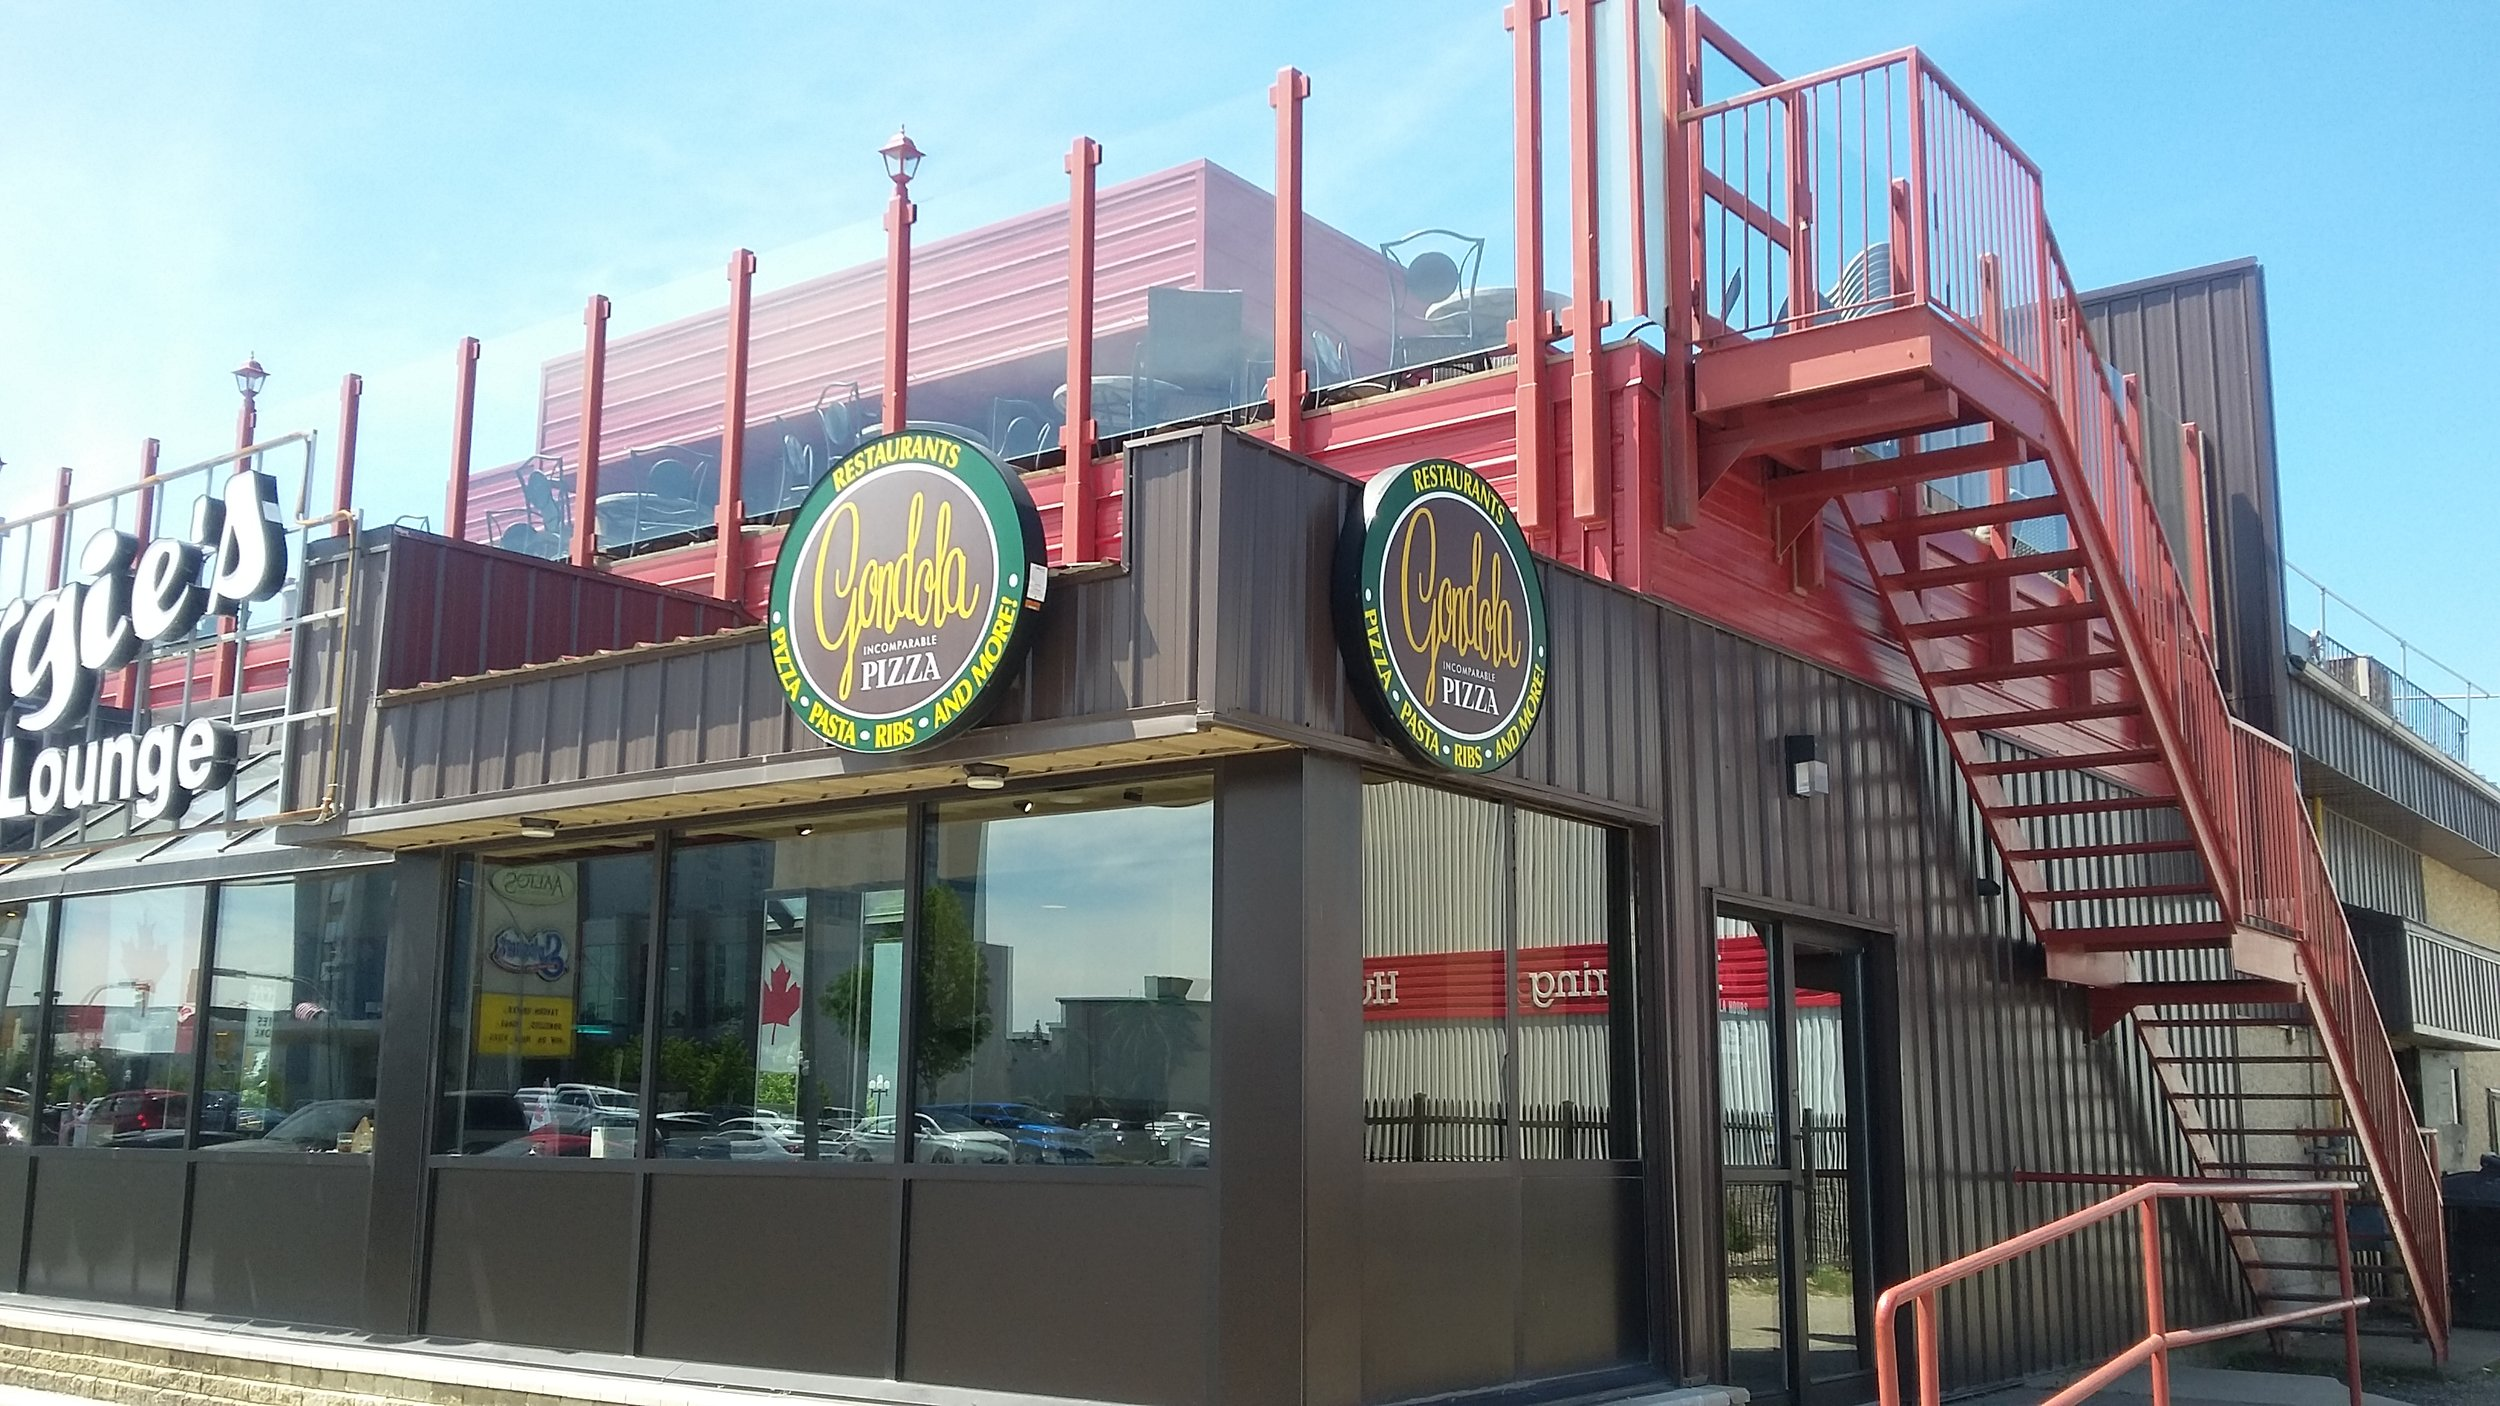 """Manitoba's Own - Gondola Pizza made and delivered its first pizza in Winnipeg in 1964.Our first restaurant was located at the corner of Oakenwald Avenue and Pembina Highway and we're proud to say we're still operating at the same site. Because of limited space, the commissary was first set up in the basement and the main floor restaurant became a convenient testing ground for our newly developed recipes.With a commitment to homemade quality, we created the world-famous """"Incomparable Original Thin Crust""""pizza.To this day, Gondola Pizza takes pride in its long-standing traditions of exceptional quality and extraordinary service. We've grown from humble beginnings in Winnipeg to being Manitoba's first choice in pizza, pasta, ribs, chicken wings, salads and so much more.Through all of our years of expansion, Gondola Pizza has remained a locally owned and operated company. Every day, we continue to provide Manitobans with great pizza, good times and life-long memories."""